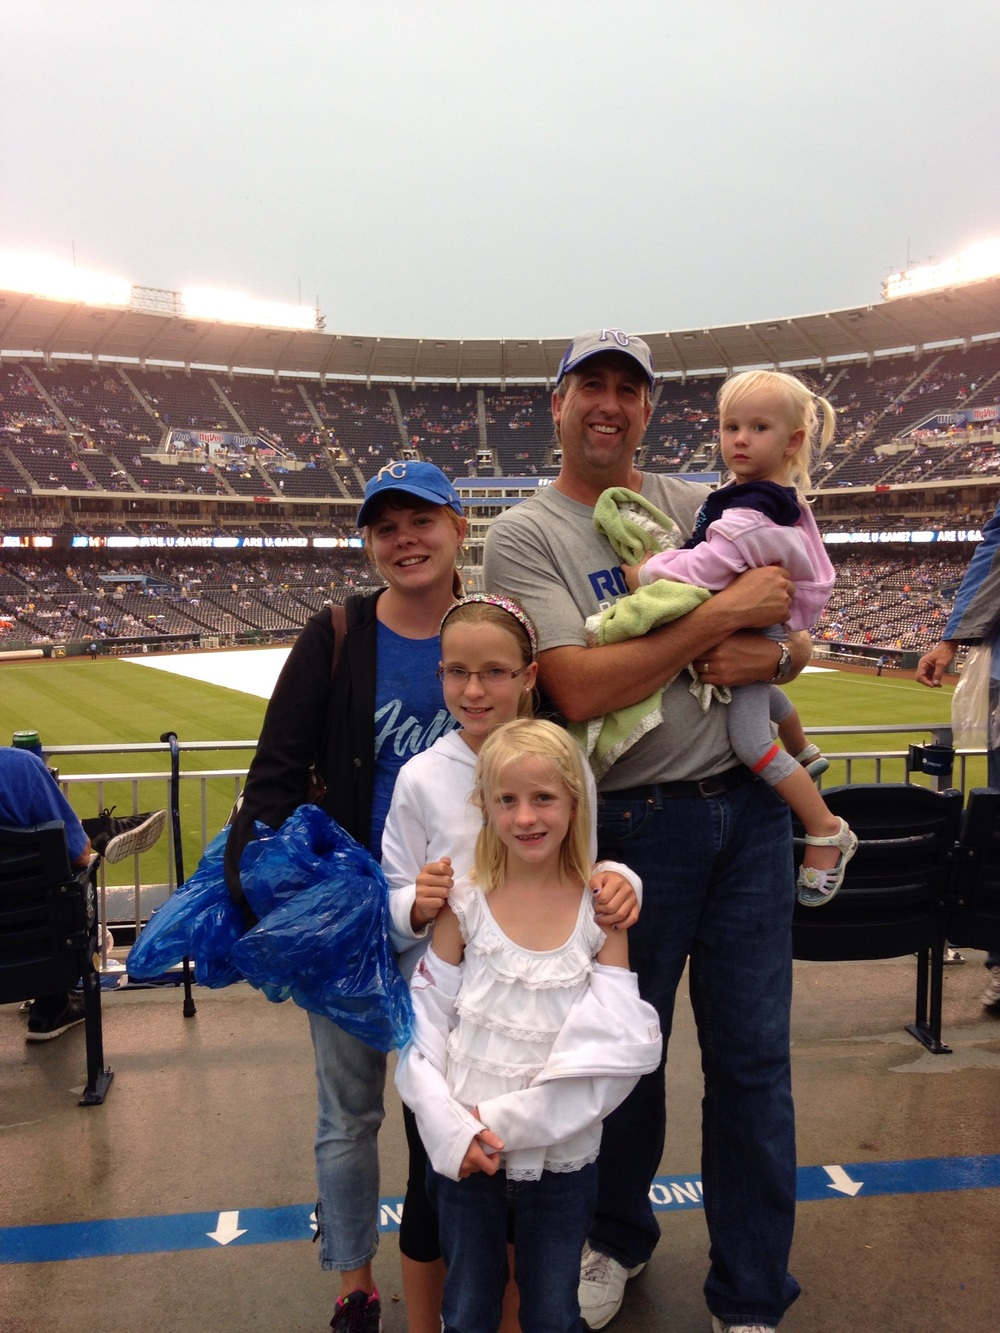 Our first family trip to a major league baseball game.